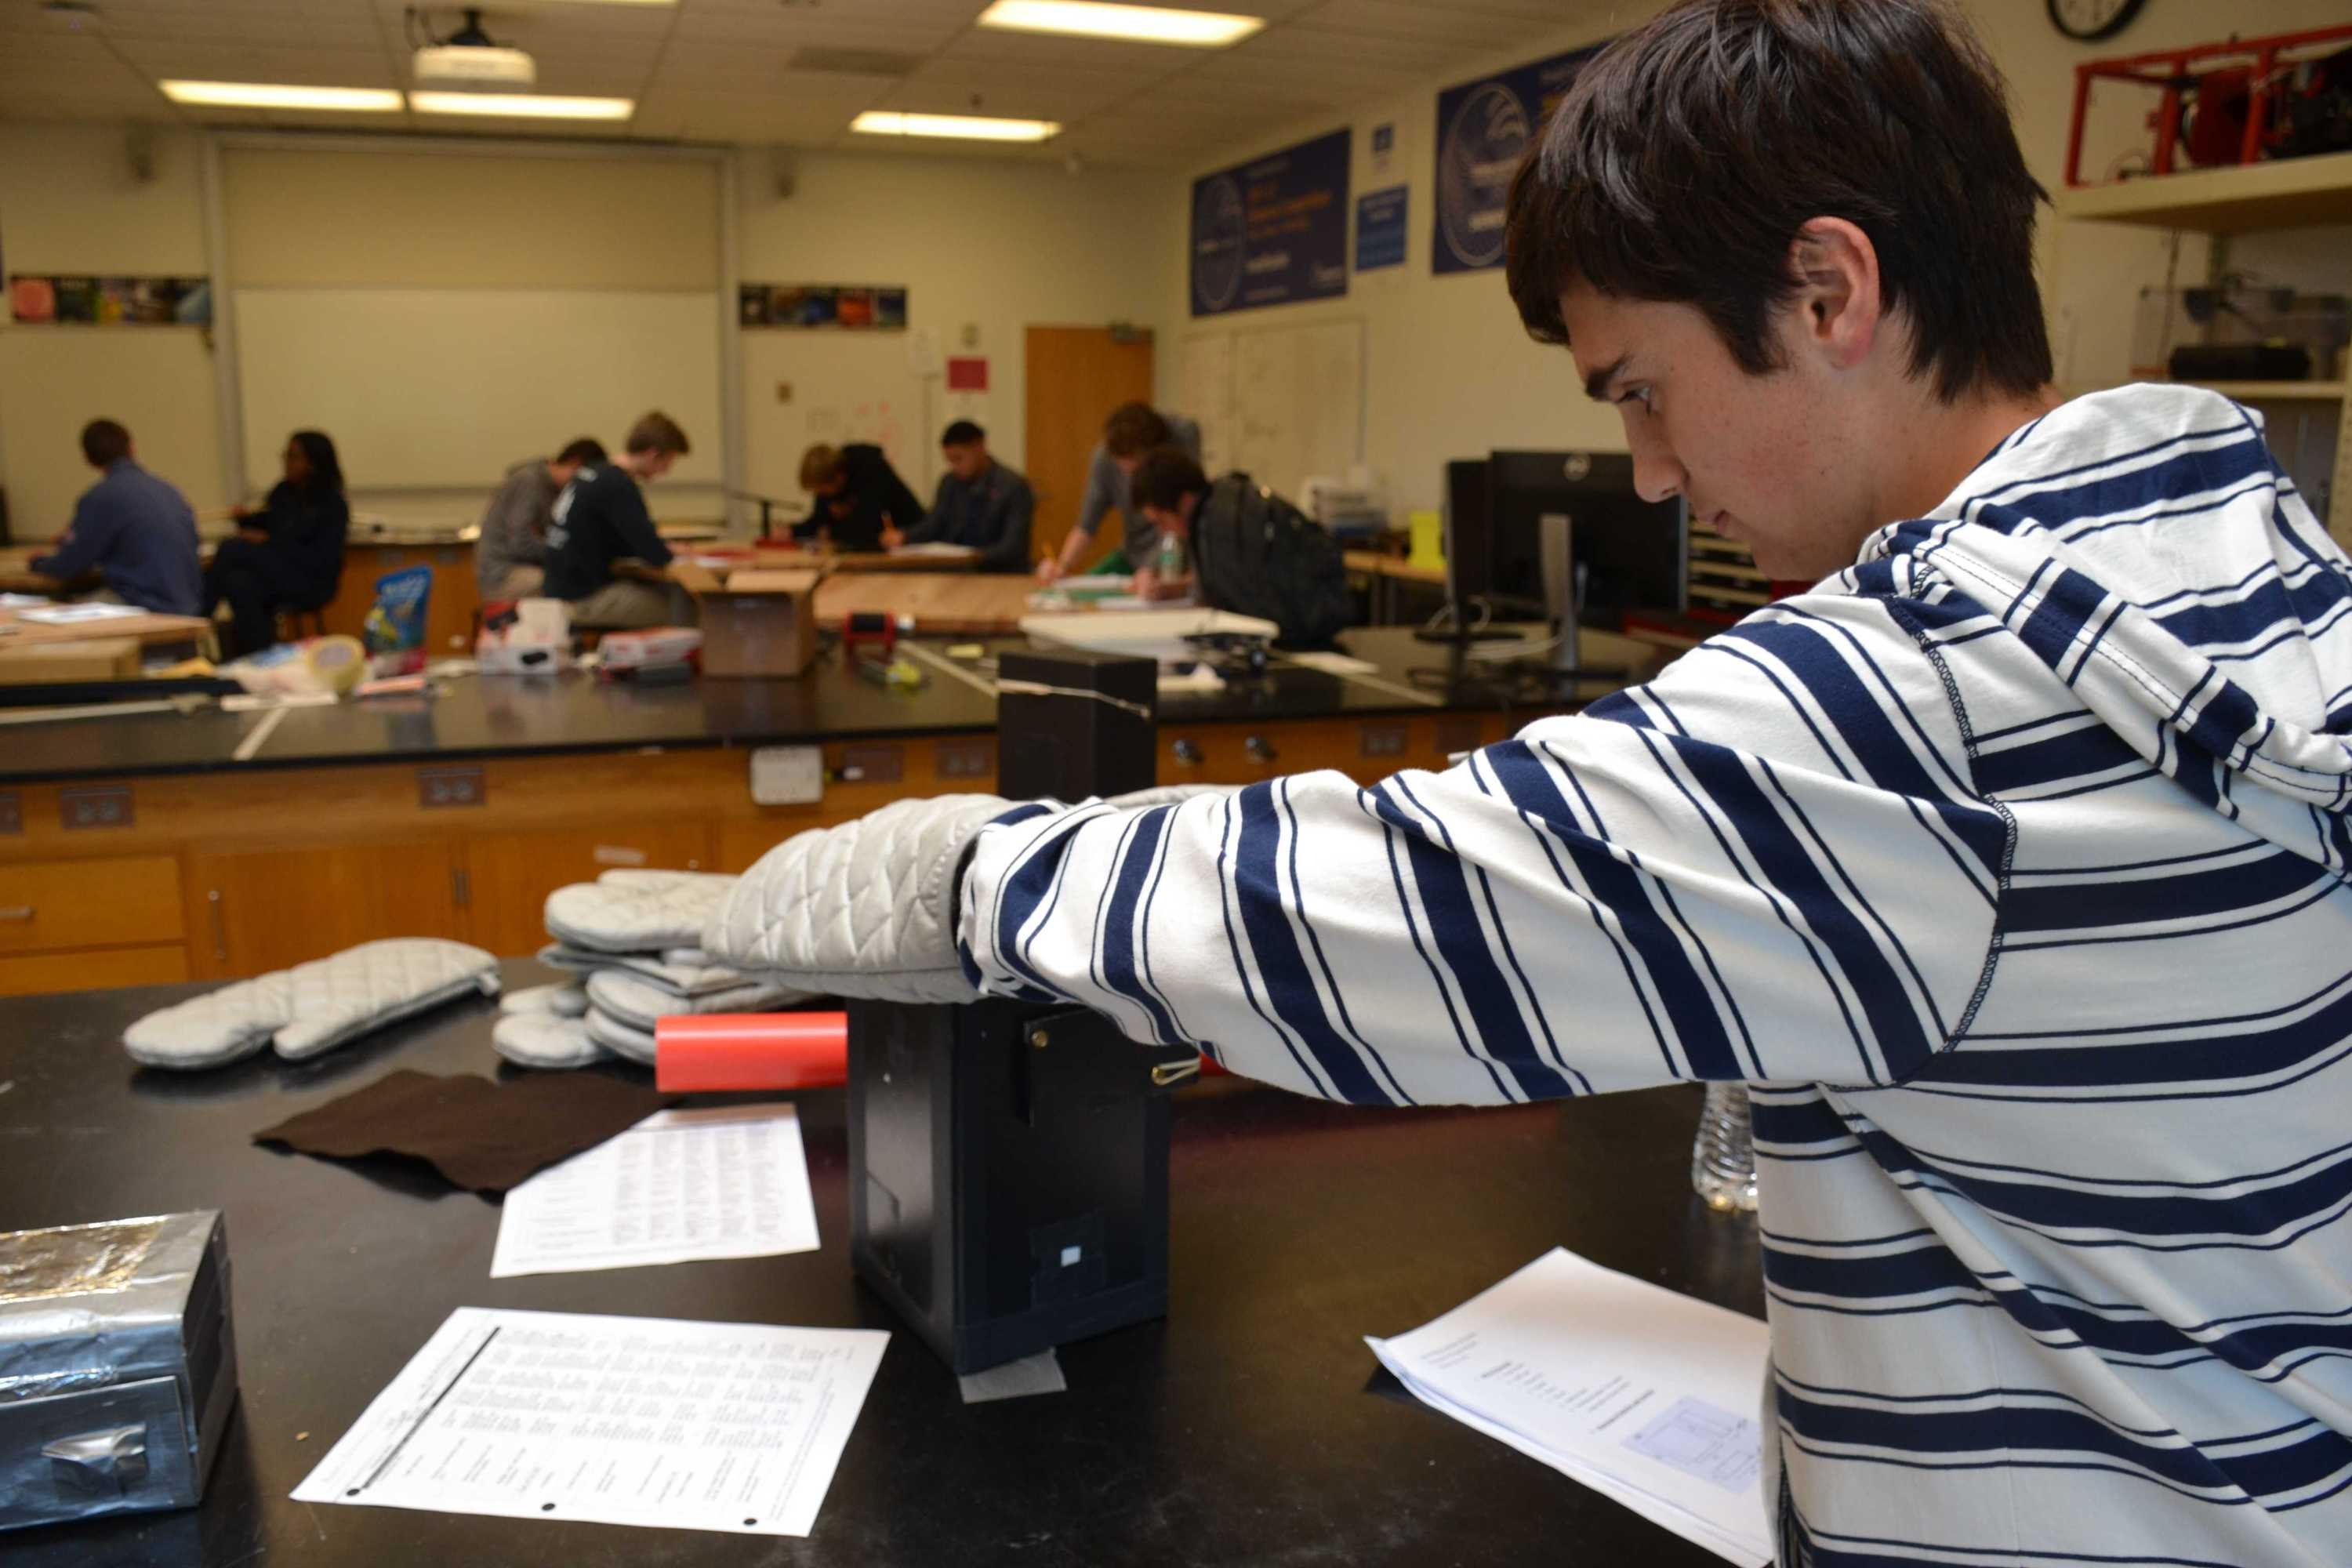 Brandon Porter '18 tests his pinhole camera during the Principles of Engineering open house Nov. 1. Students in the class designed cameras for people who have limited manual dexterity, and created manuals detailing their design process. Credit: Kaitlin Musante/Chronicle